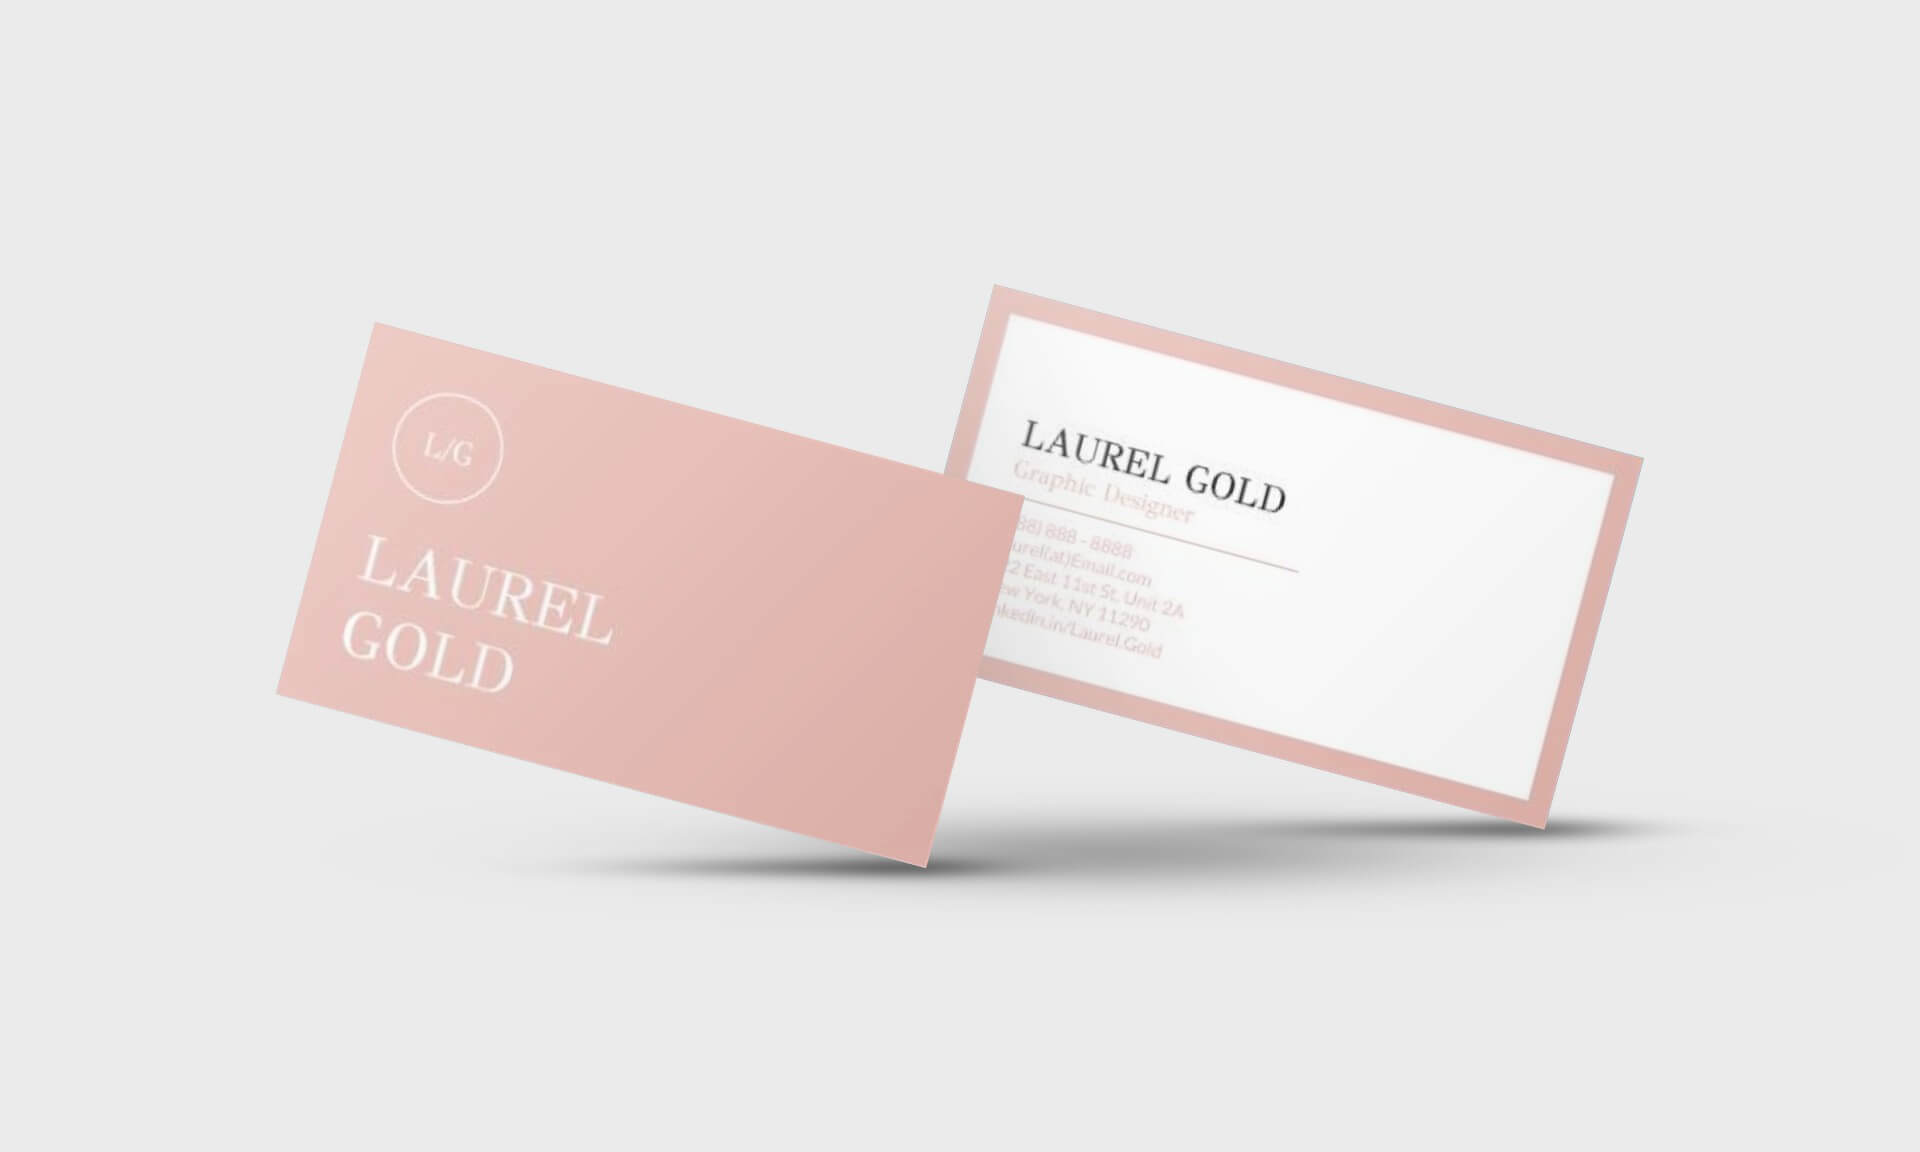 Laurel Gold Google Docs Business Card Template - Stand Out Shop Pertaining To Business Card Template For Google Docs